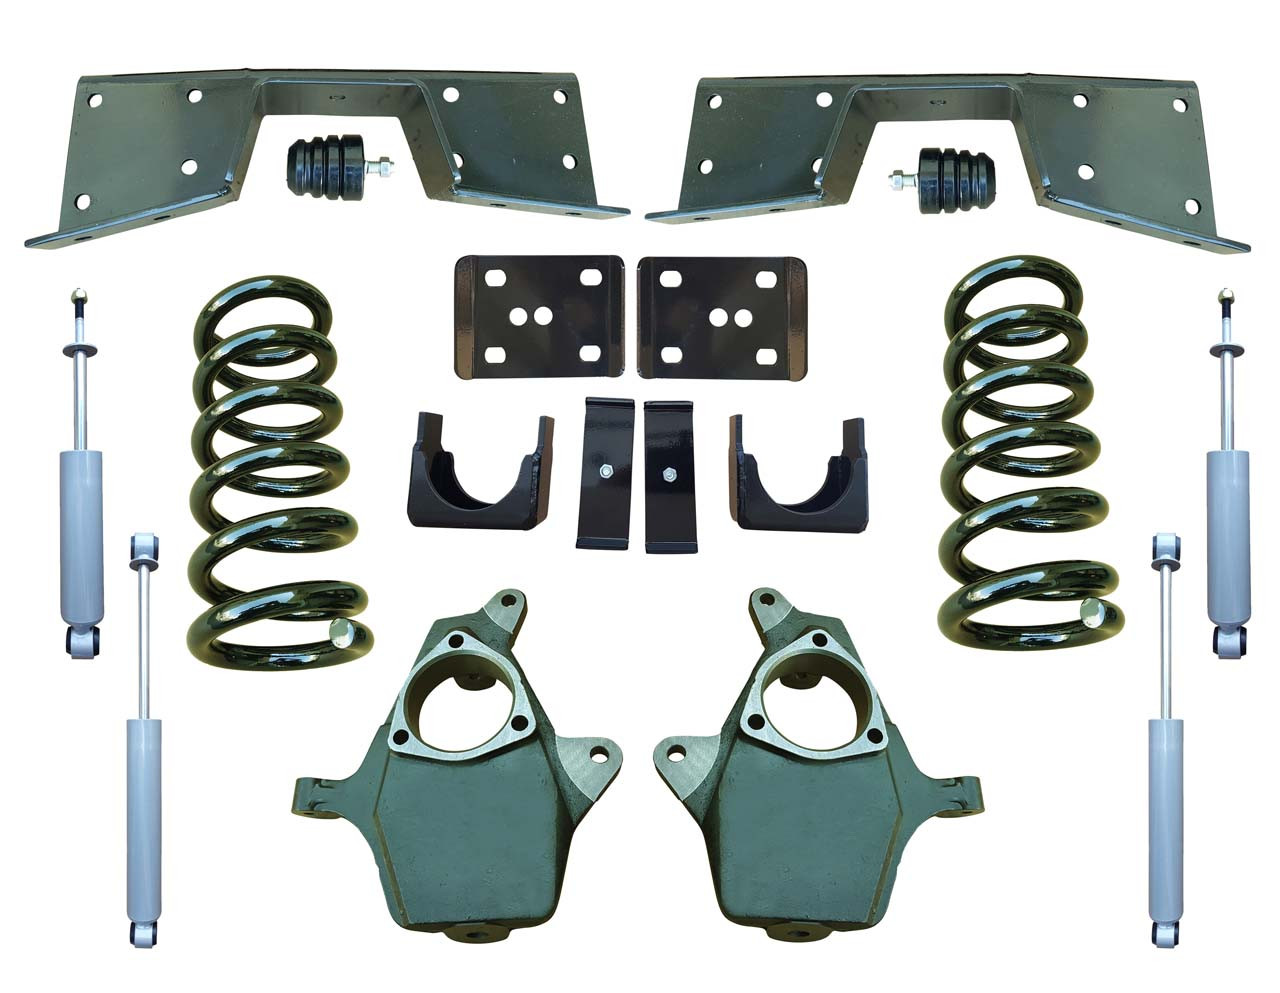 Complete 5/6 Lowering Kit for 99-00 Chevrolet Silverado